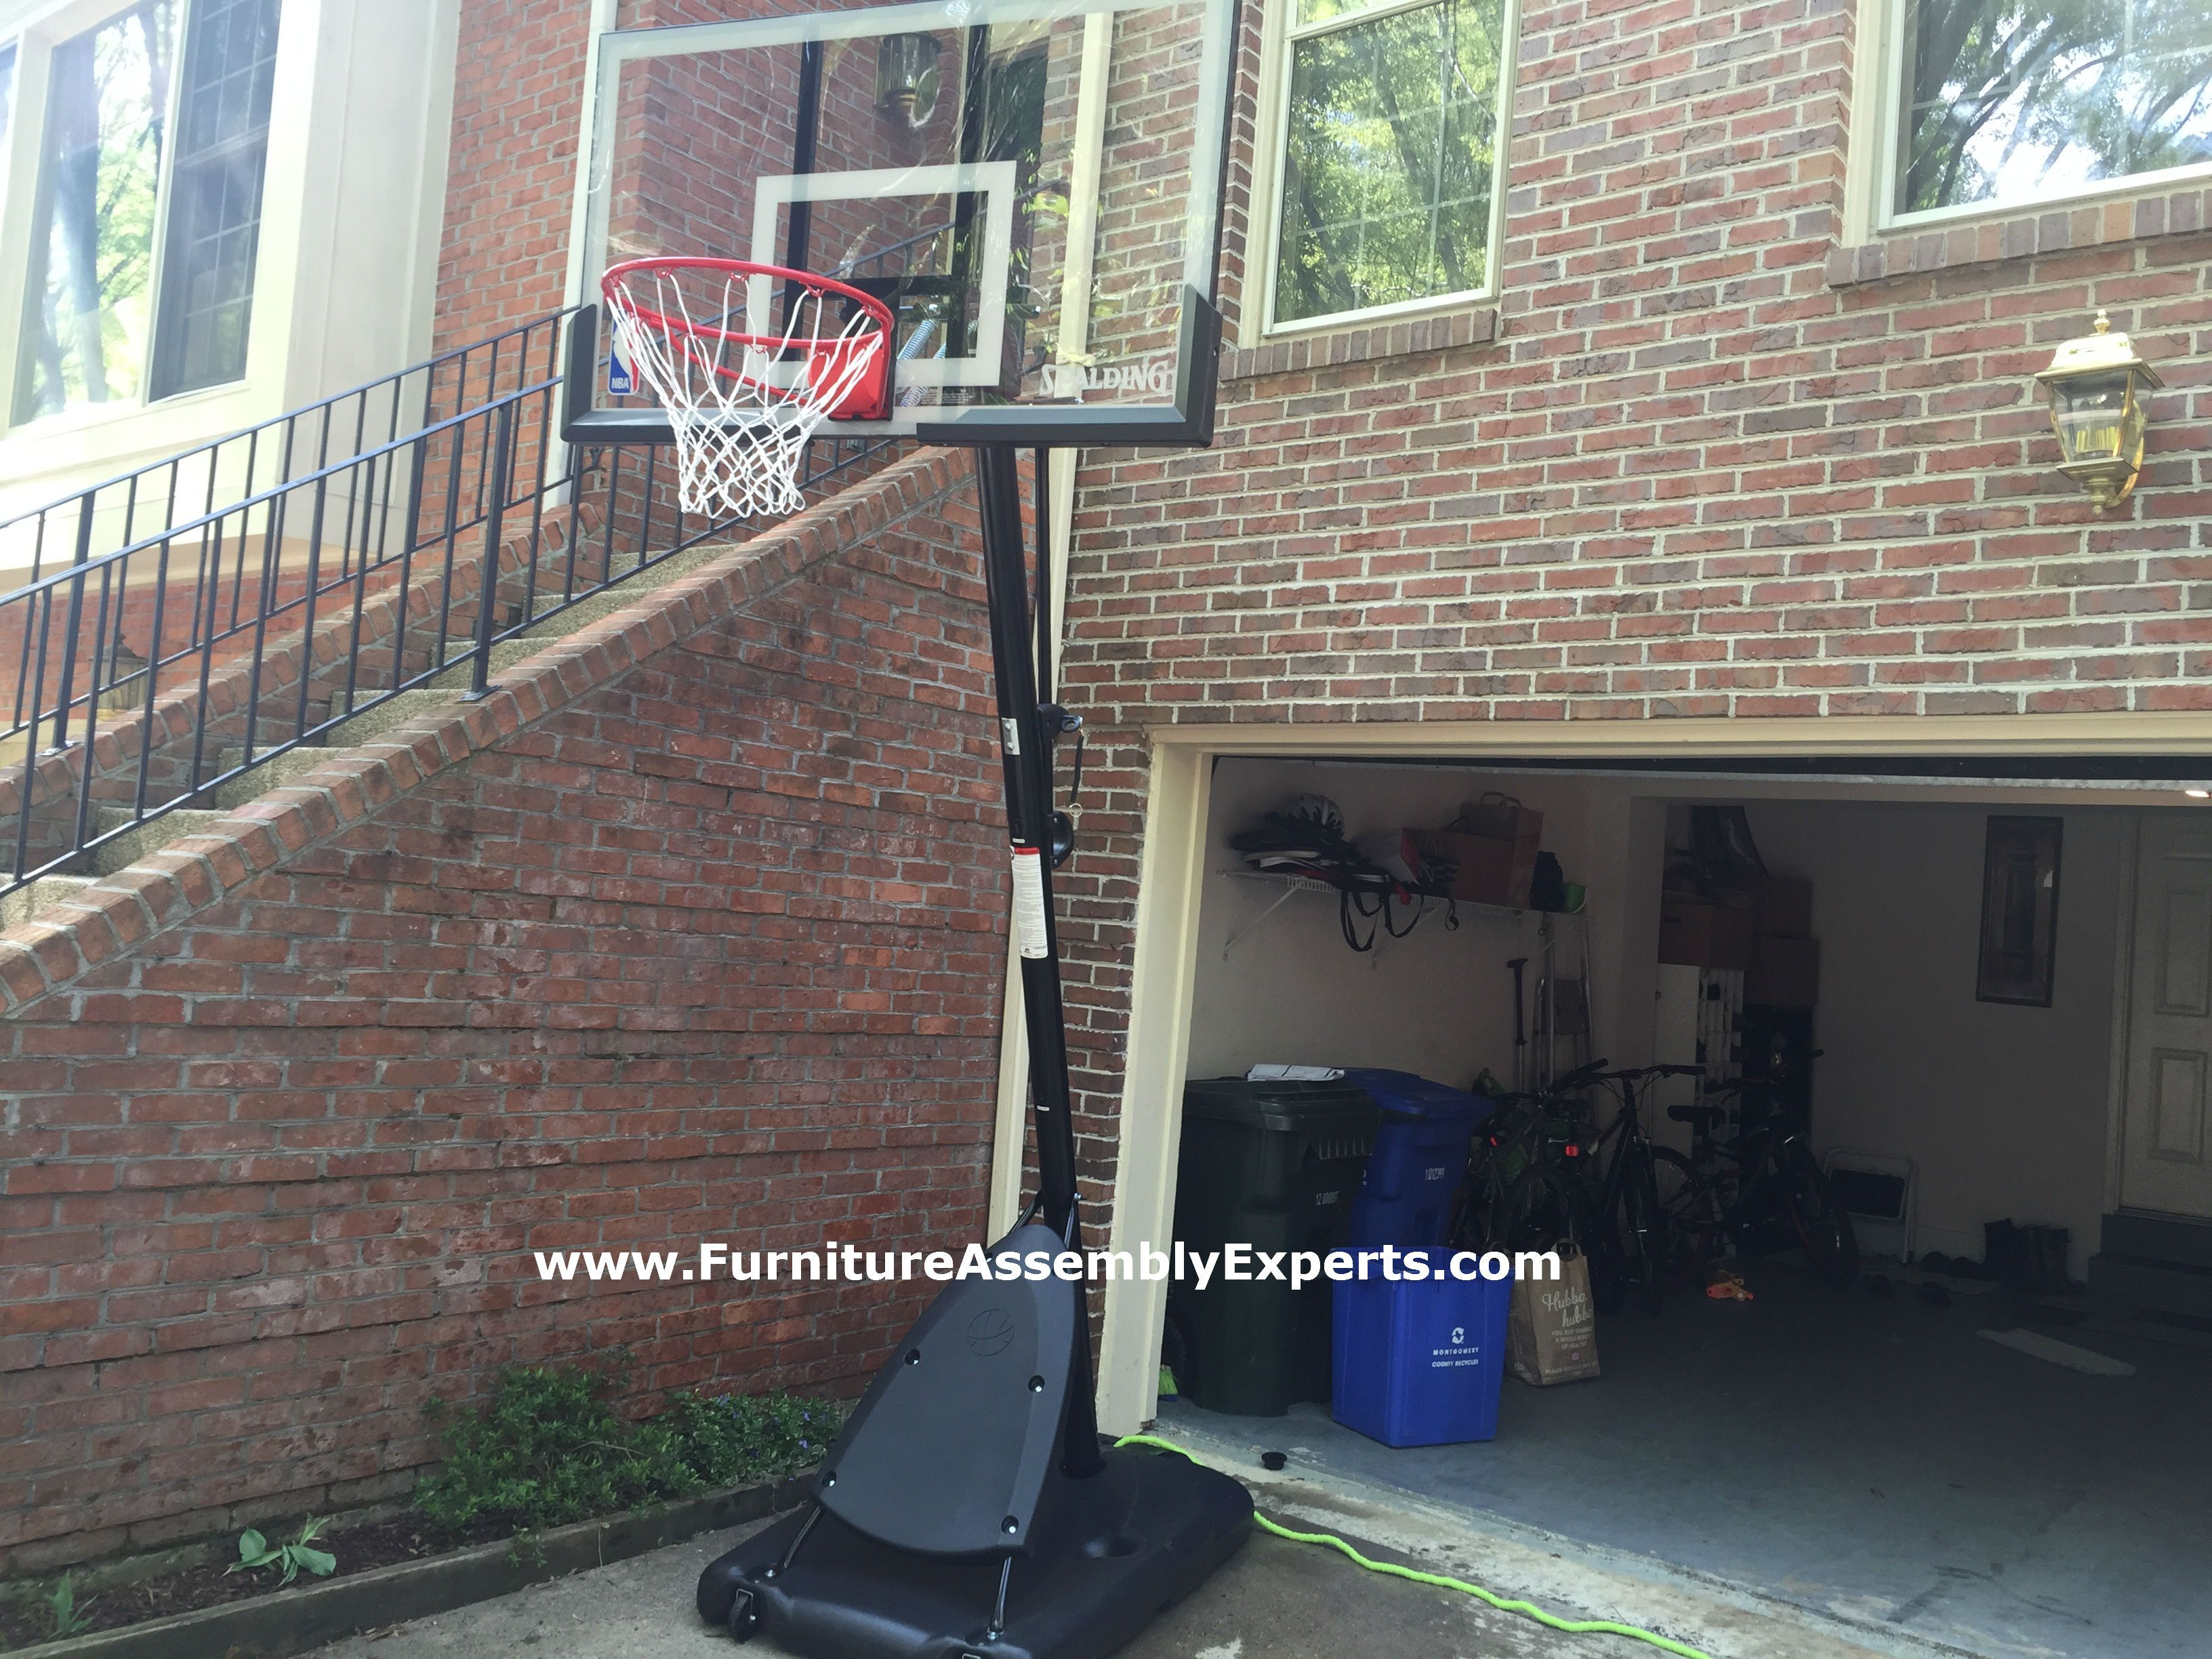 Furniture Assembly Services Specialist Serving Washington Dc Md Va Furniture Assembly Portable Basketball Hoop Basketball T Shirt Designs